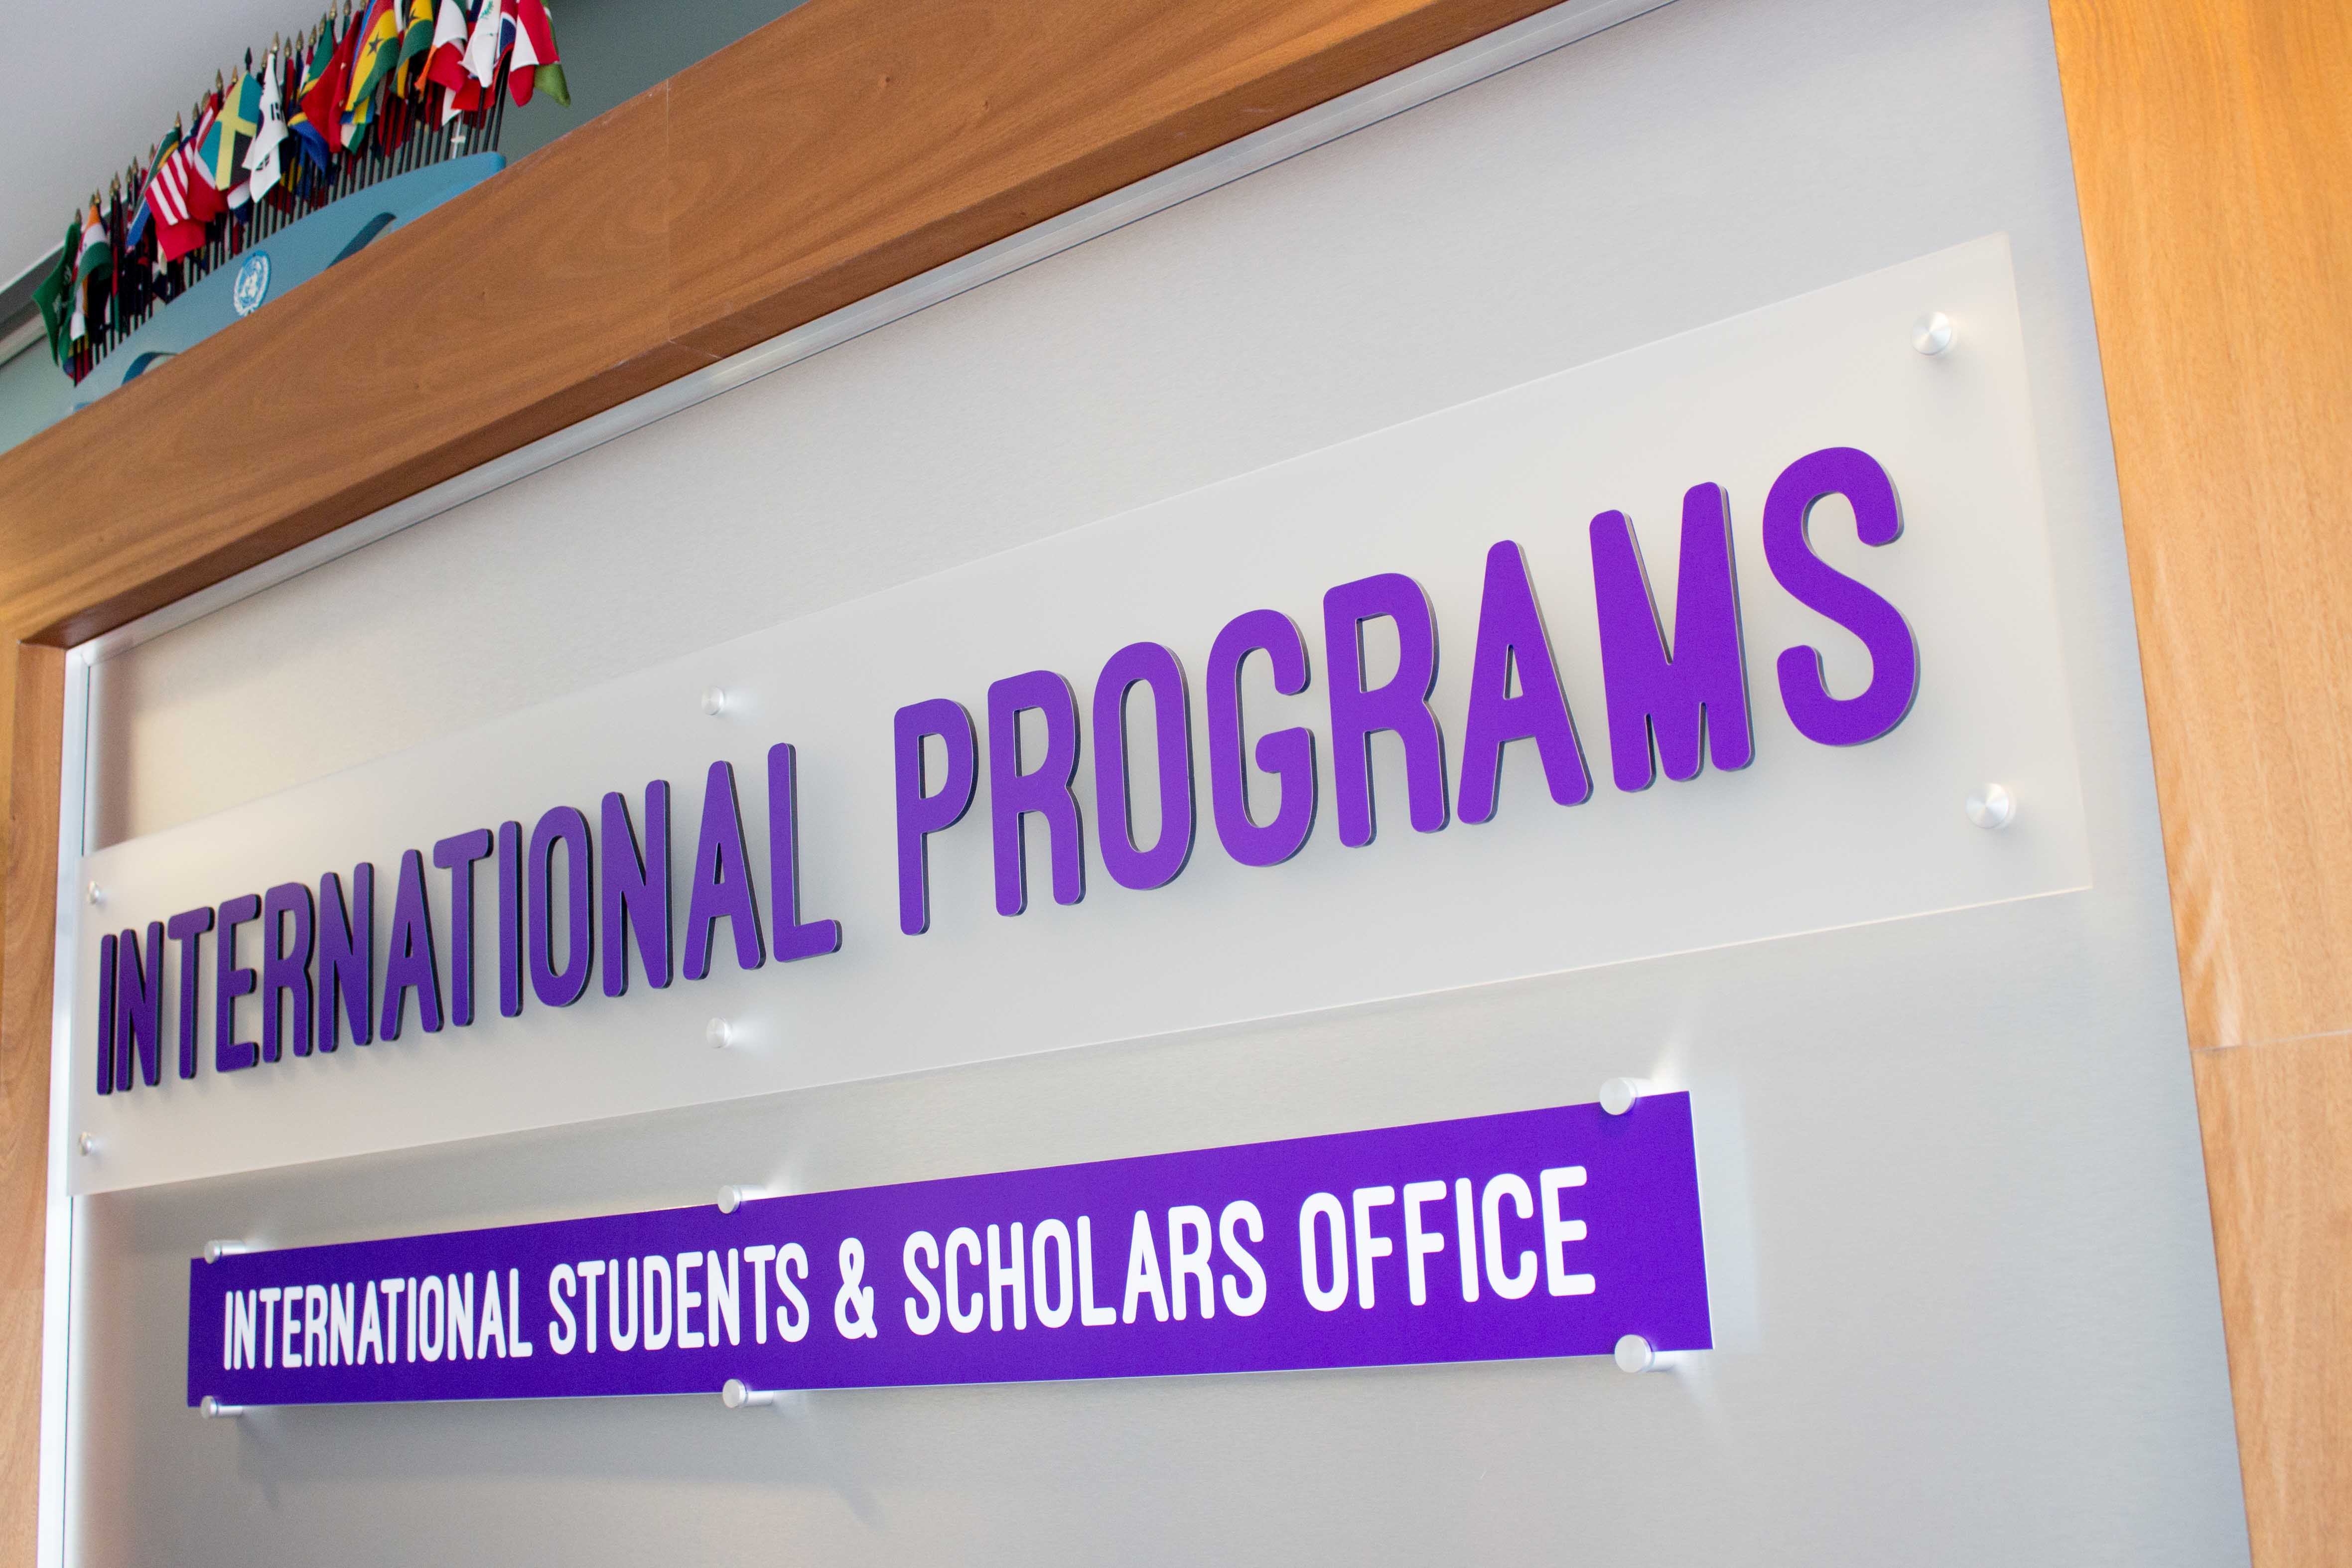 The International Students and Scholars Office and the Department of Residence have both discussed the challenge of accommodating international students on campus, especially during breaks.